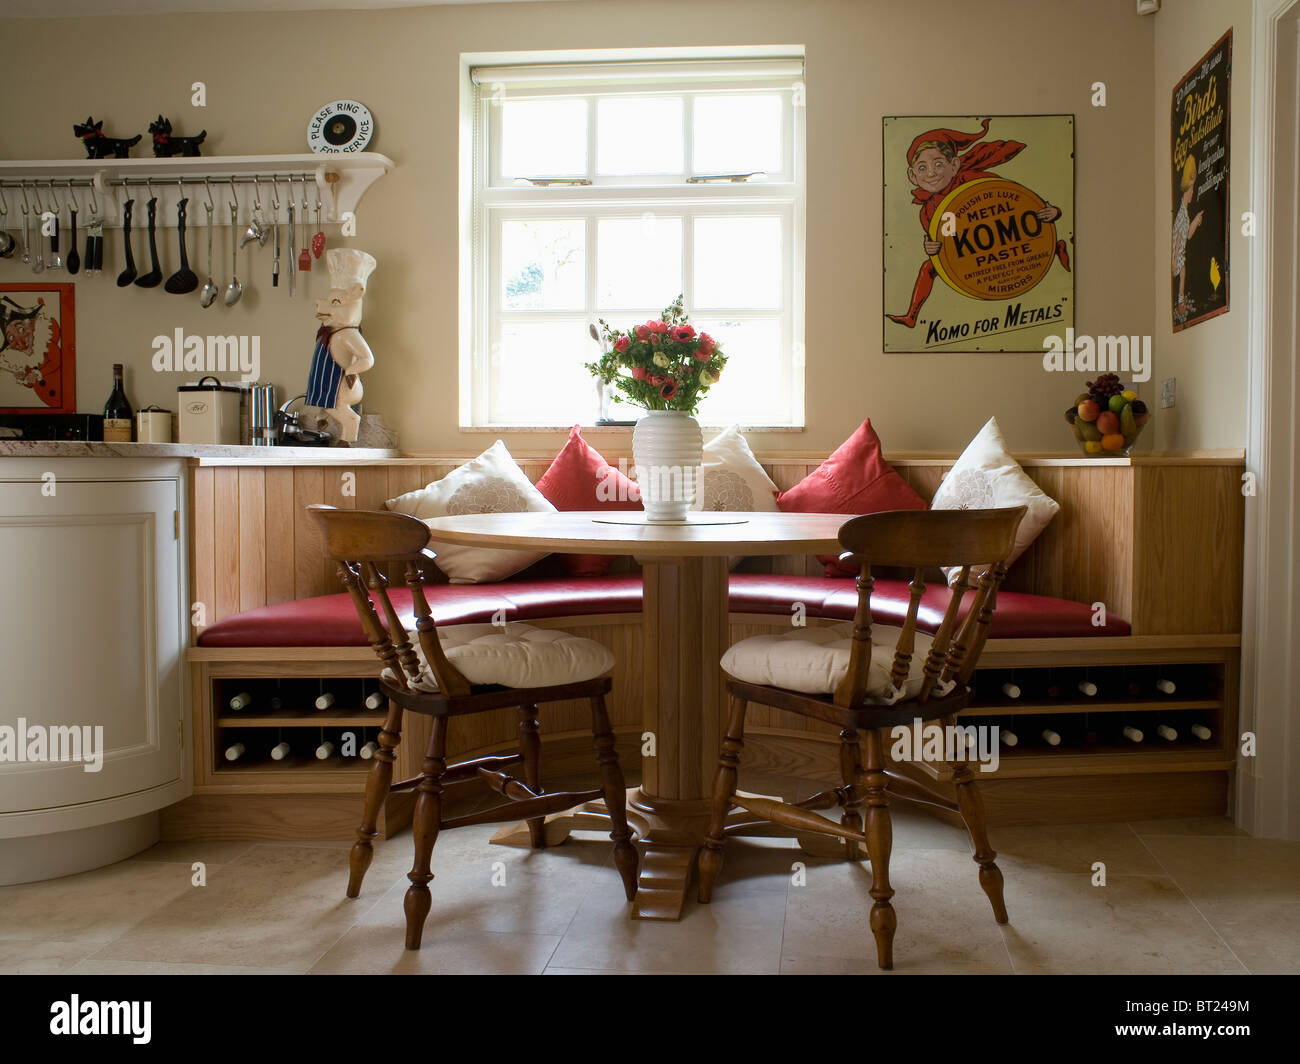 circular table and old wooden chairs in kitchen dining room with fitted BT249M